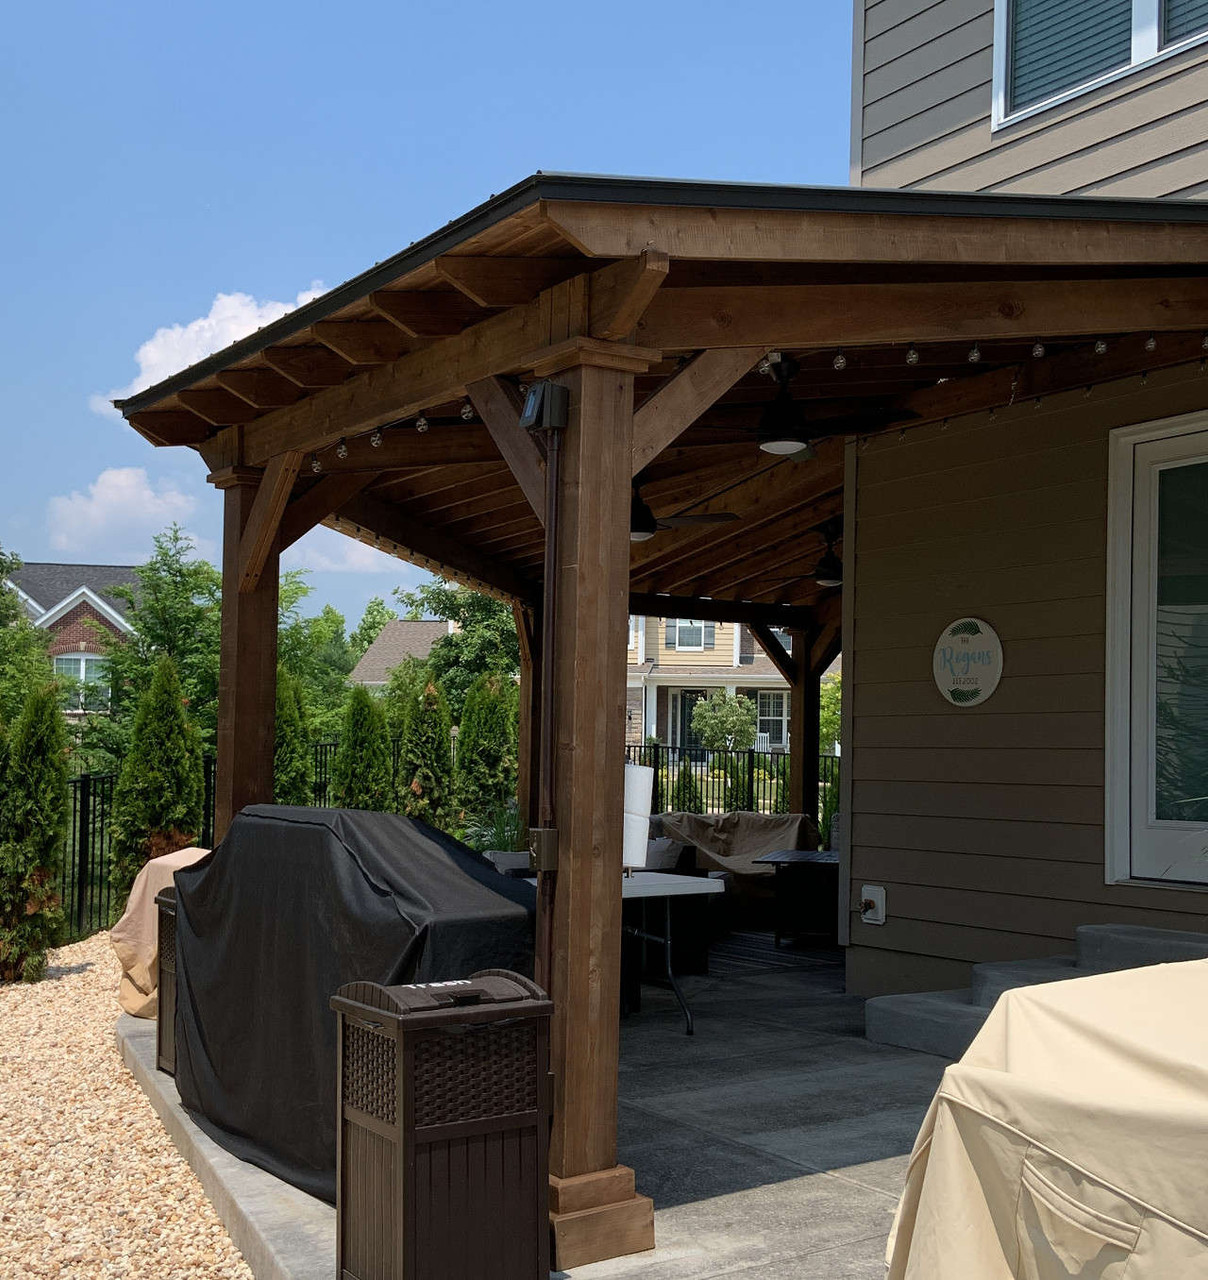 48x12 wall-mounted wrap-around cedar Lean-To Pavilion. Black metal panel roofing. Walnut color stain. Chesterfield, MO.